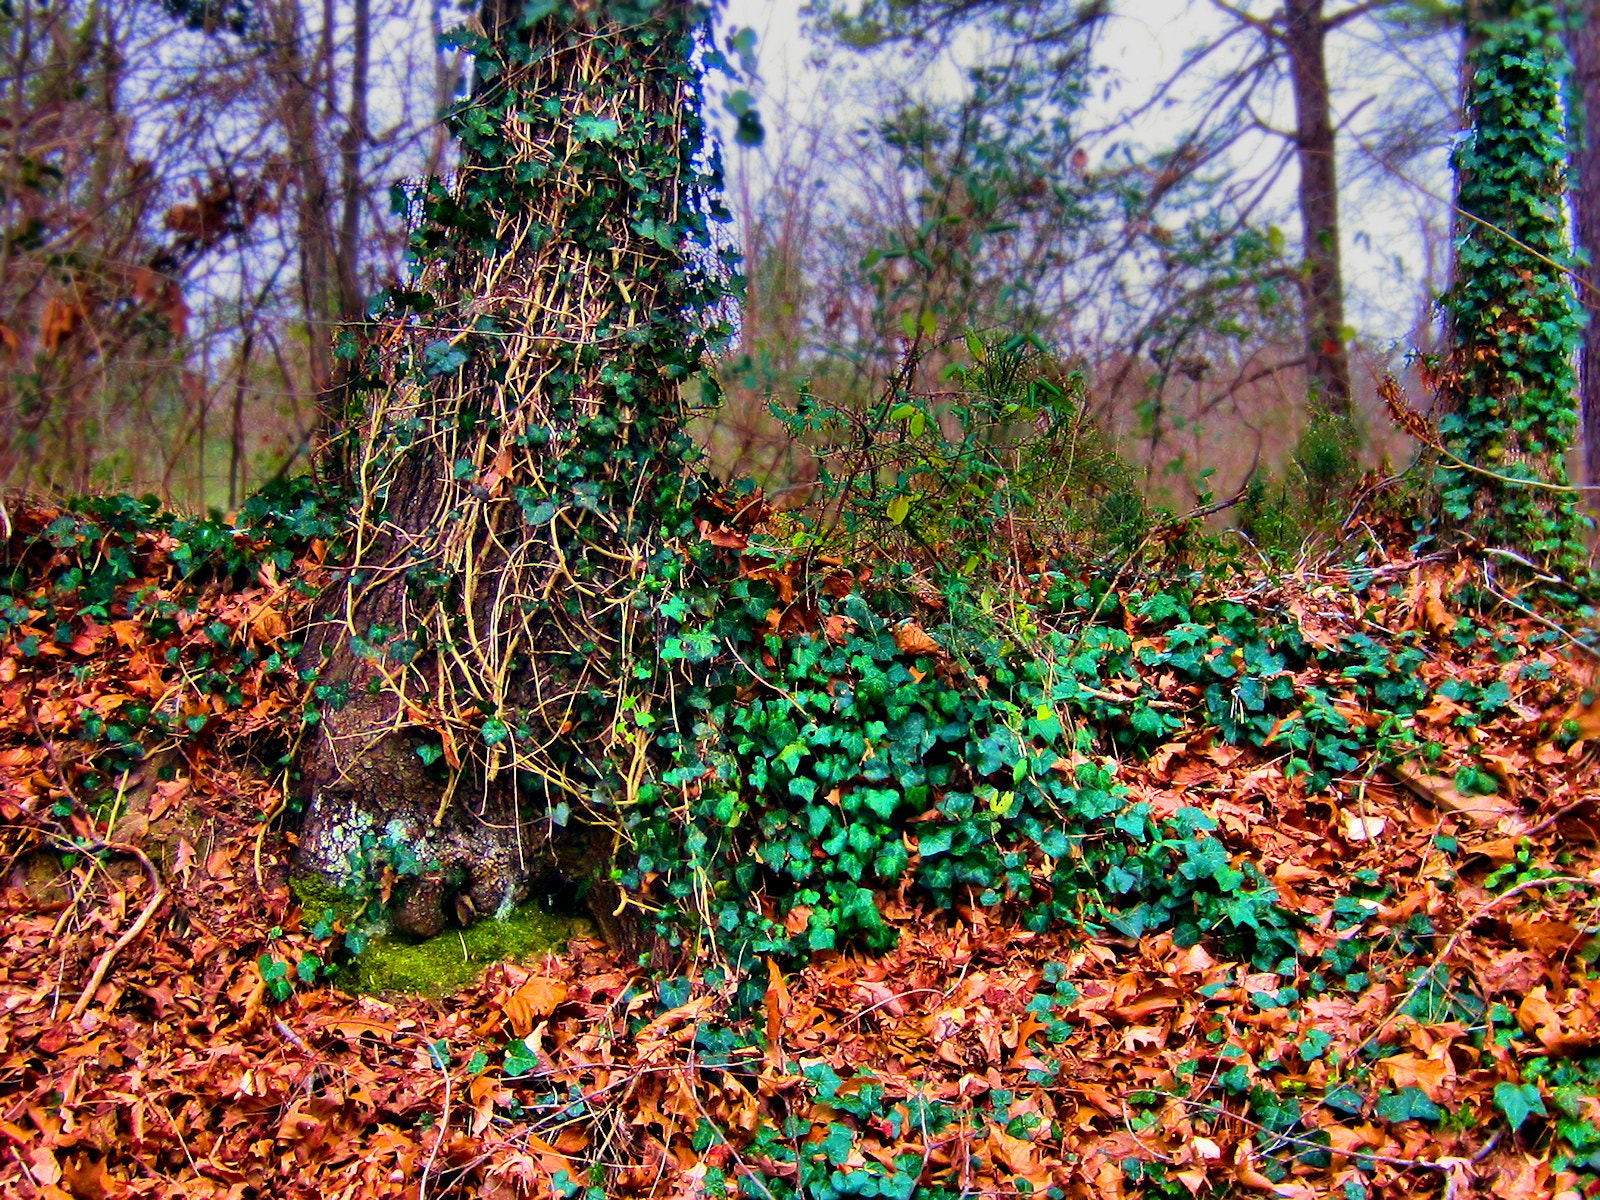 Photograph Tree Ivy by SusanAnn Avery on 500px